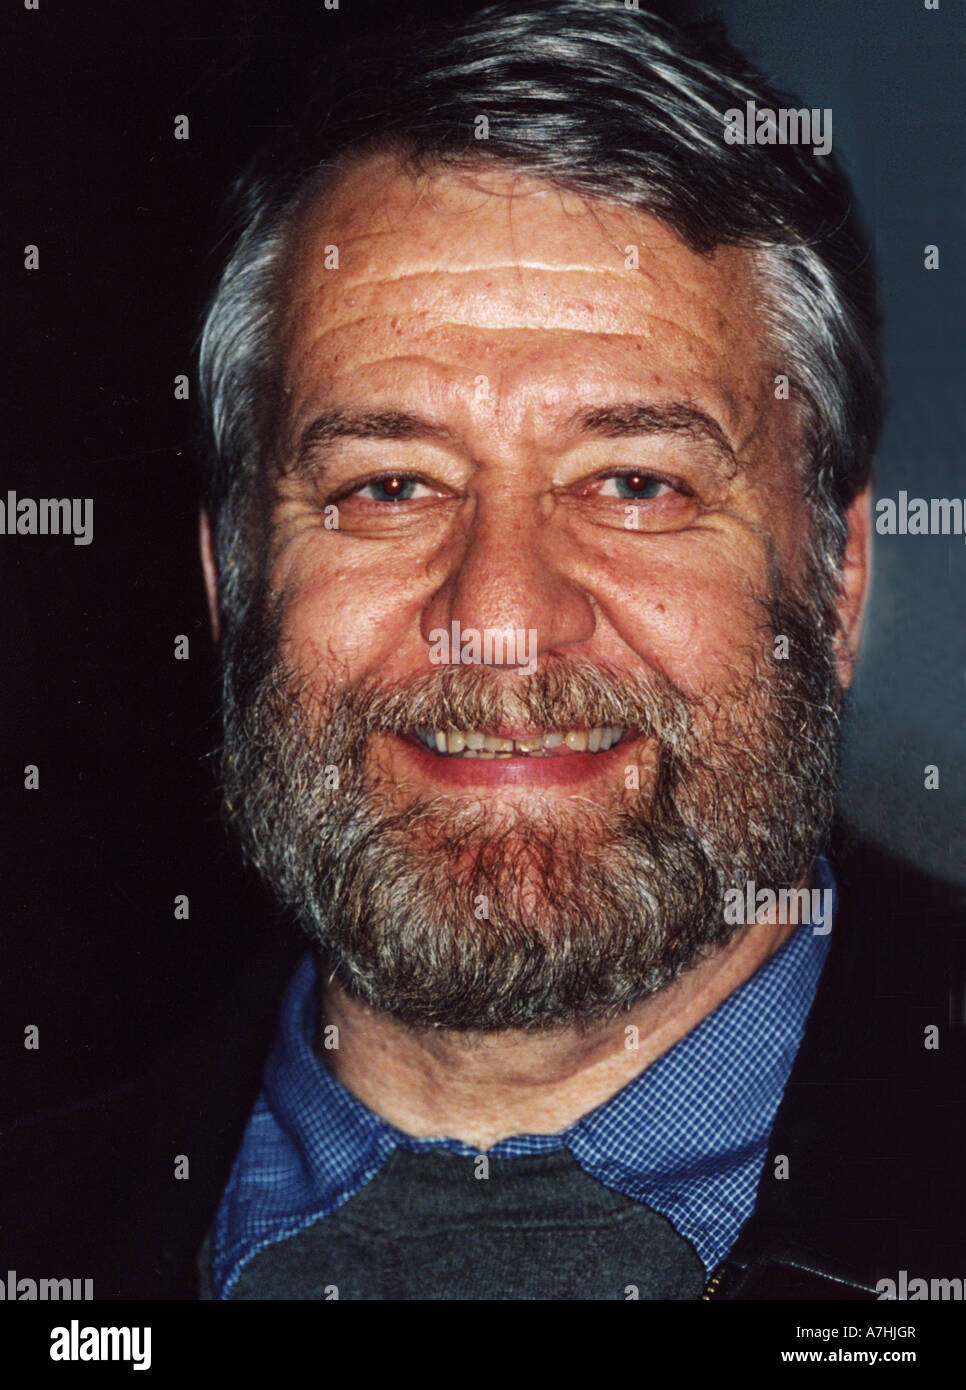 TONY ASHER American lyricist who co-wrote much of the Beach Boys 1966 album Pet Sounds - here about 2005 - Stock Image